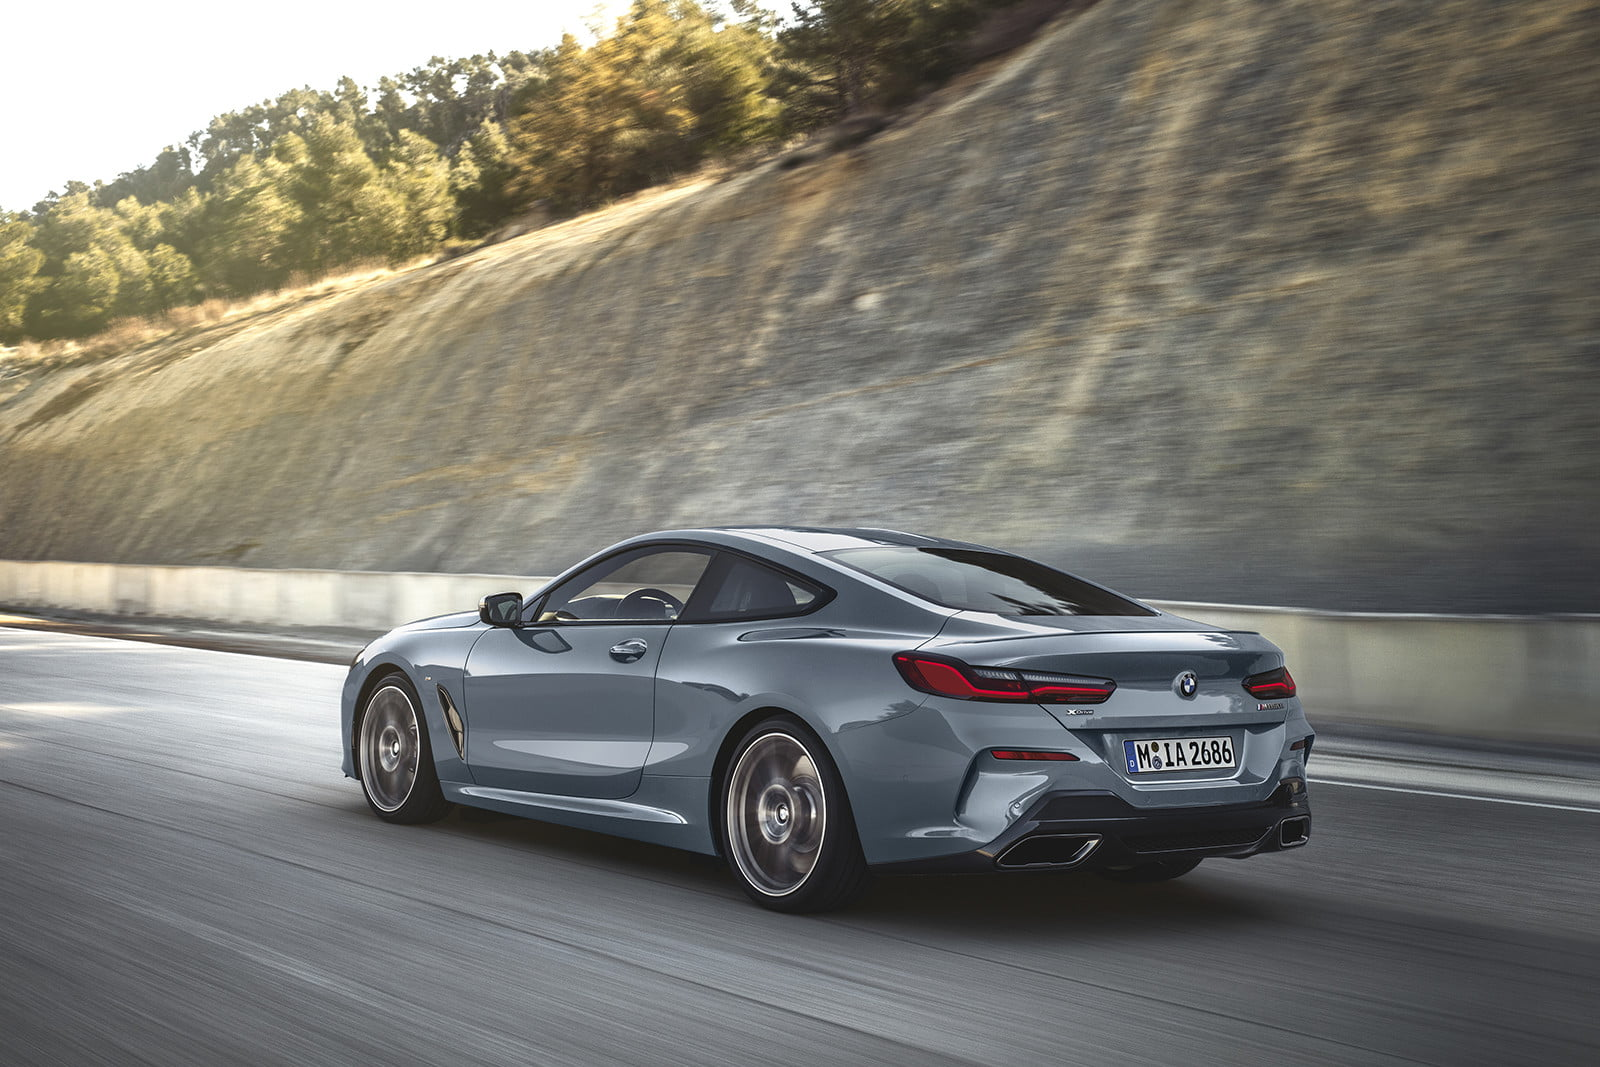 The 2019 Bmw M850i Xdrive Requires 112 895 To End Up In Your Driveway